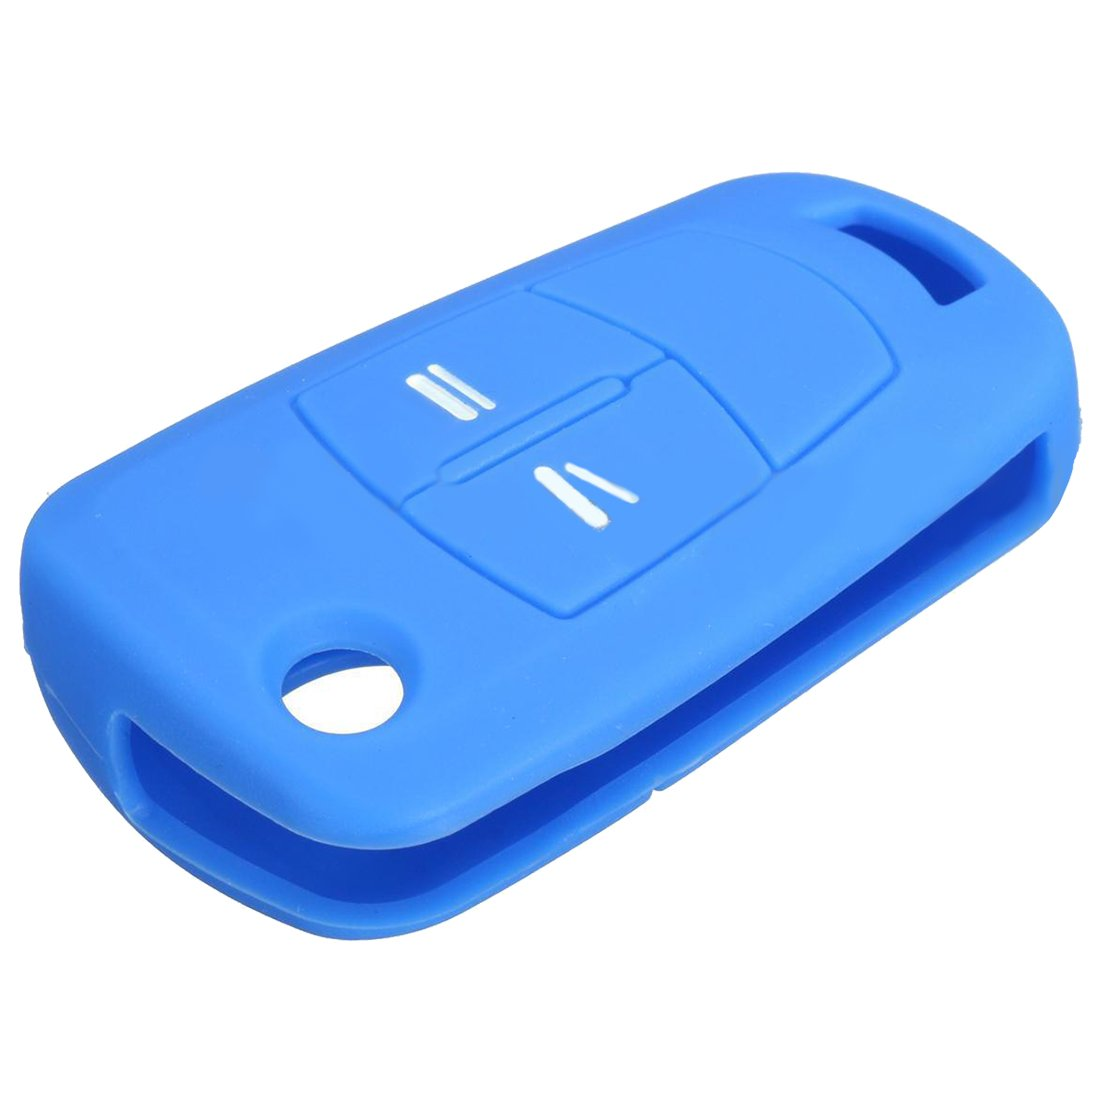 Cikuso Silicone Flip Key Case 2 Button fob Cover for Vauxhall Opel Astra Vectra CORSA